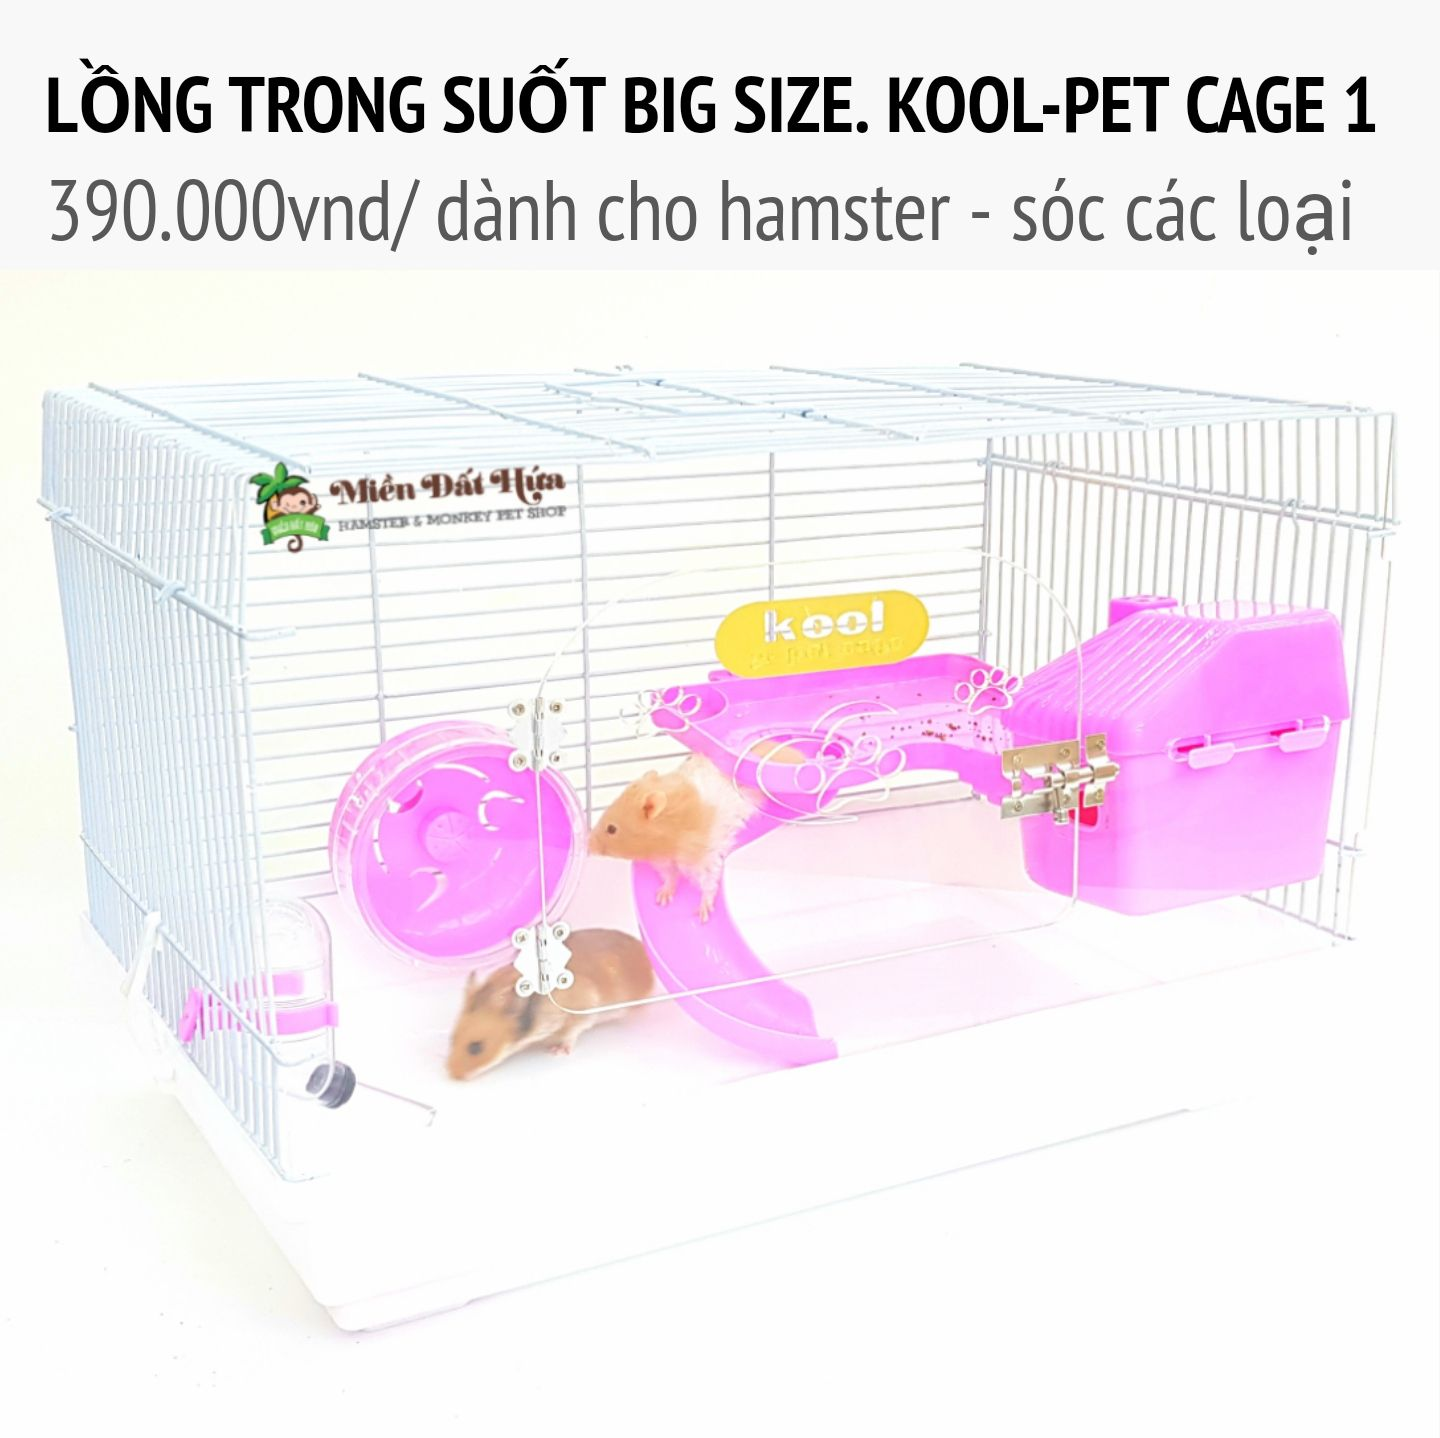 Lồng trong suốt big size kool-pet cage 1